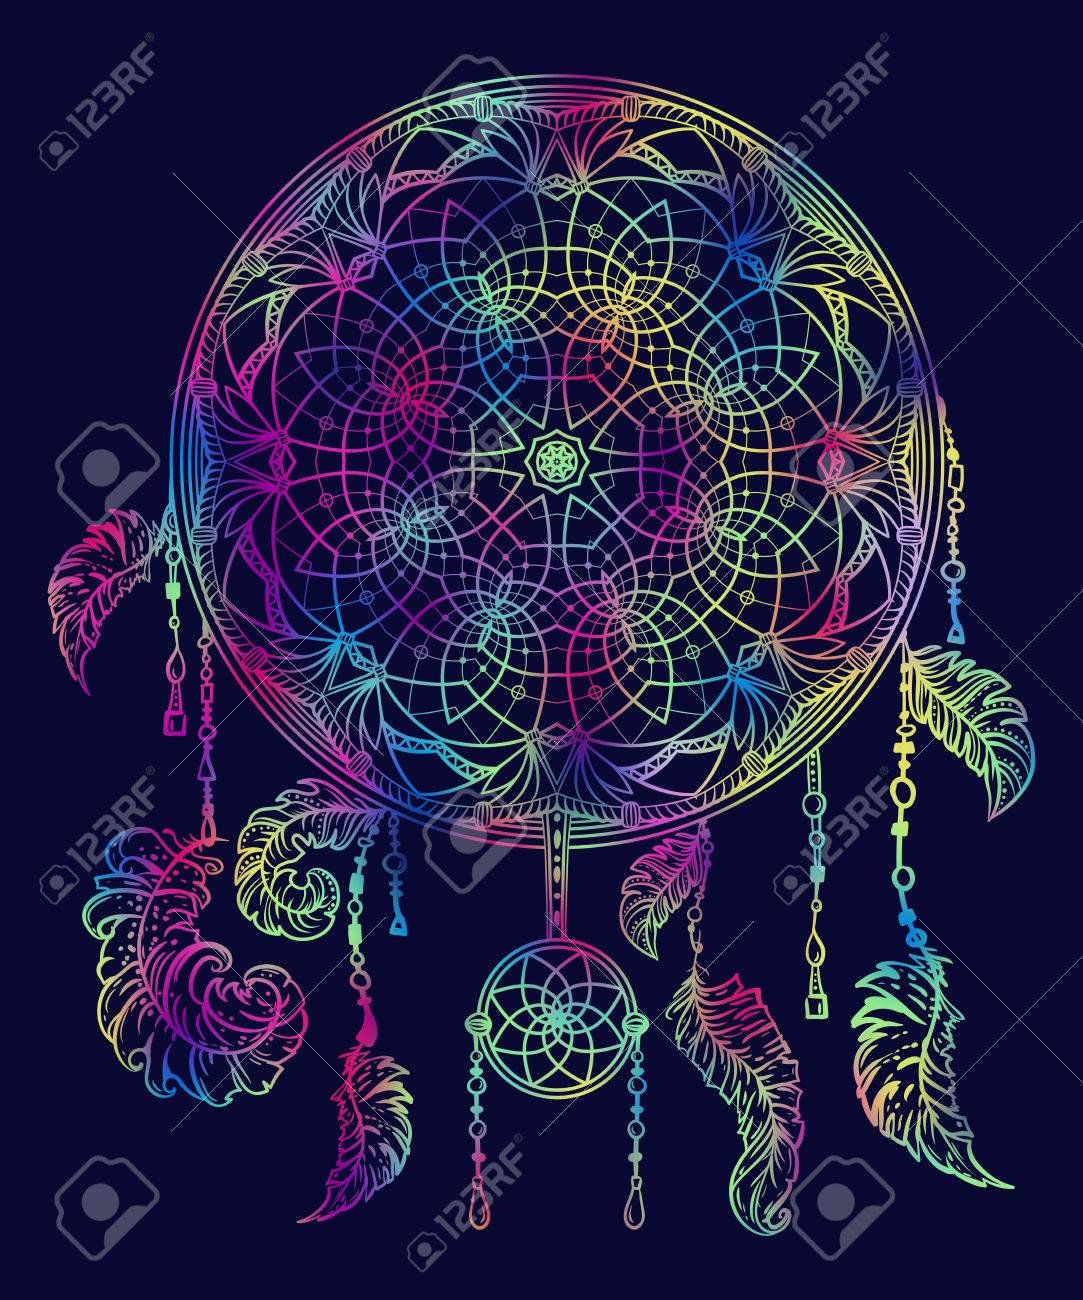 - Colorful Dream Catcher With Ornament And Feathers. Design Concept